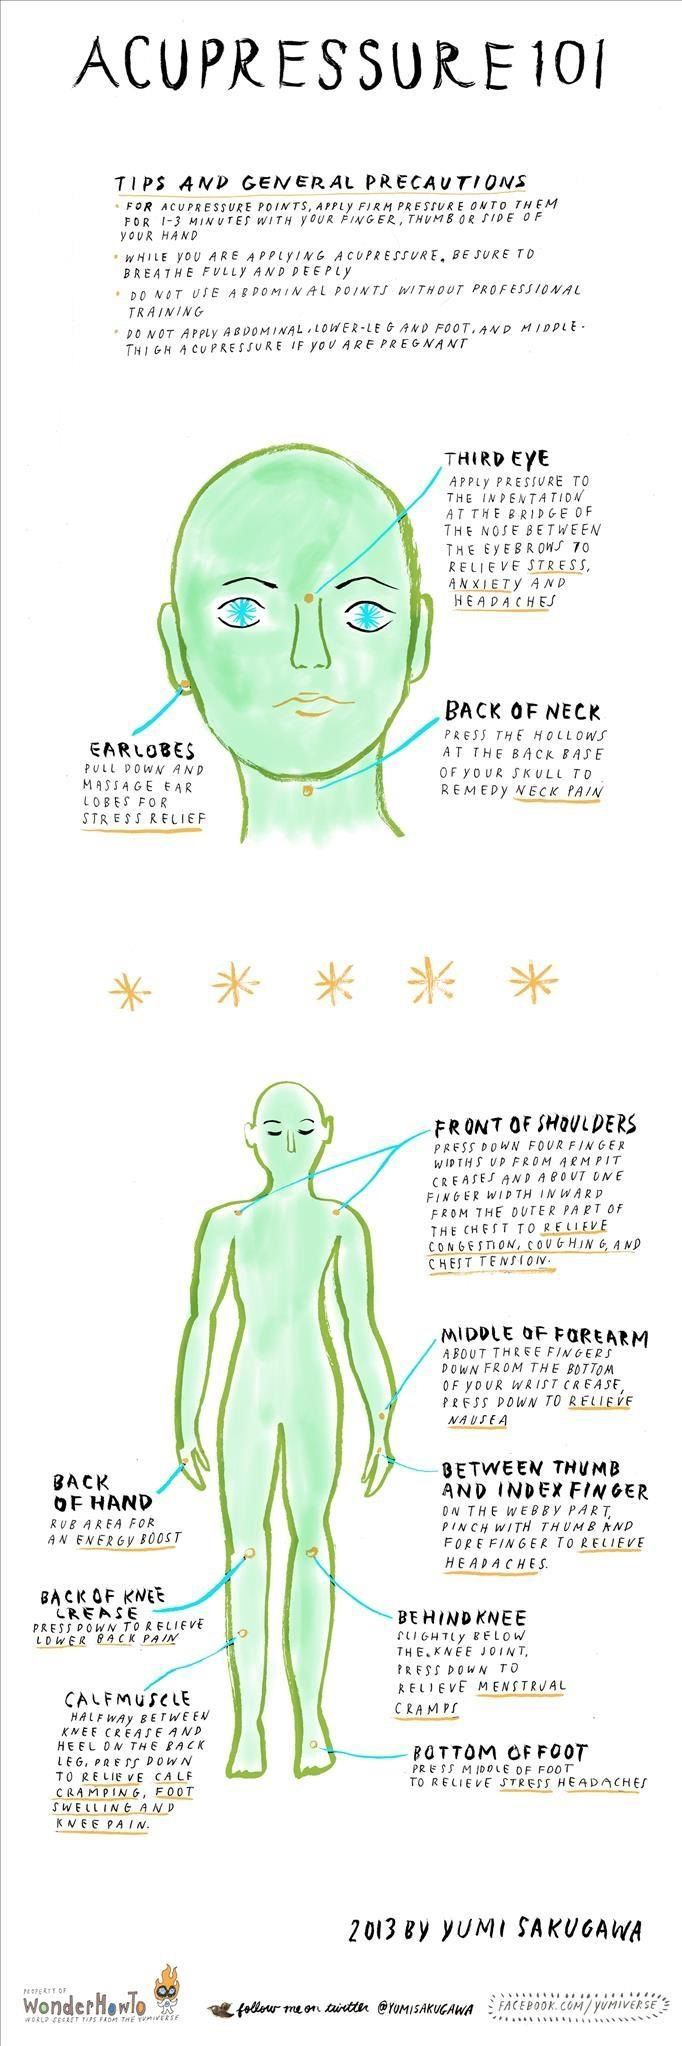 627 best acupuncture quotes images on pinterest acupressure acupressure 101 you can relieve your stress without leaving your desk infographi acupressure solutioingenieria Images